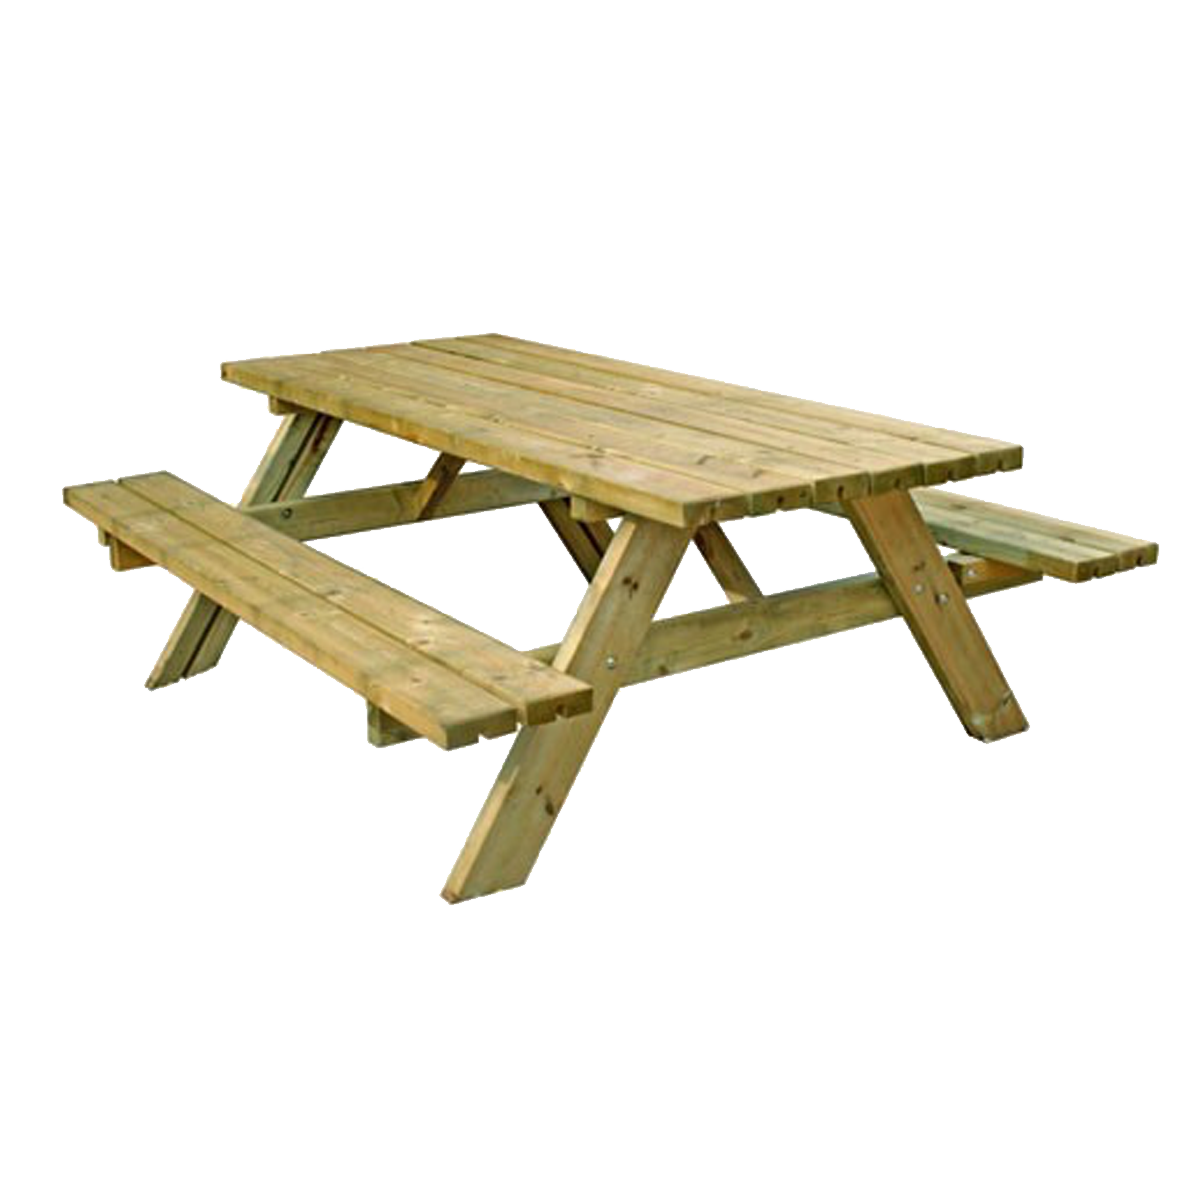 Picnic table png. Garden furniture east anglia